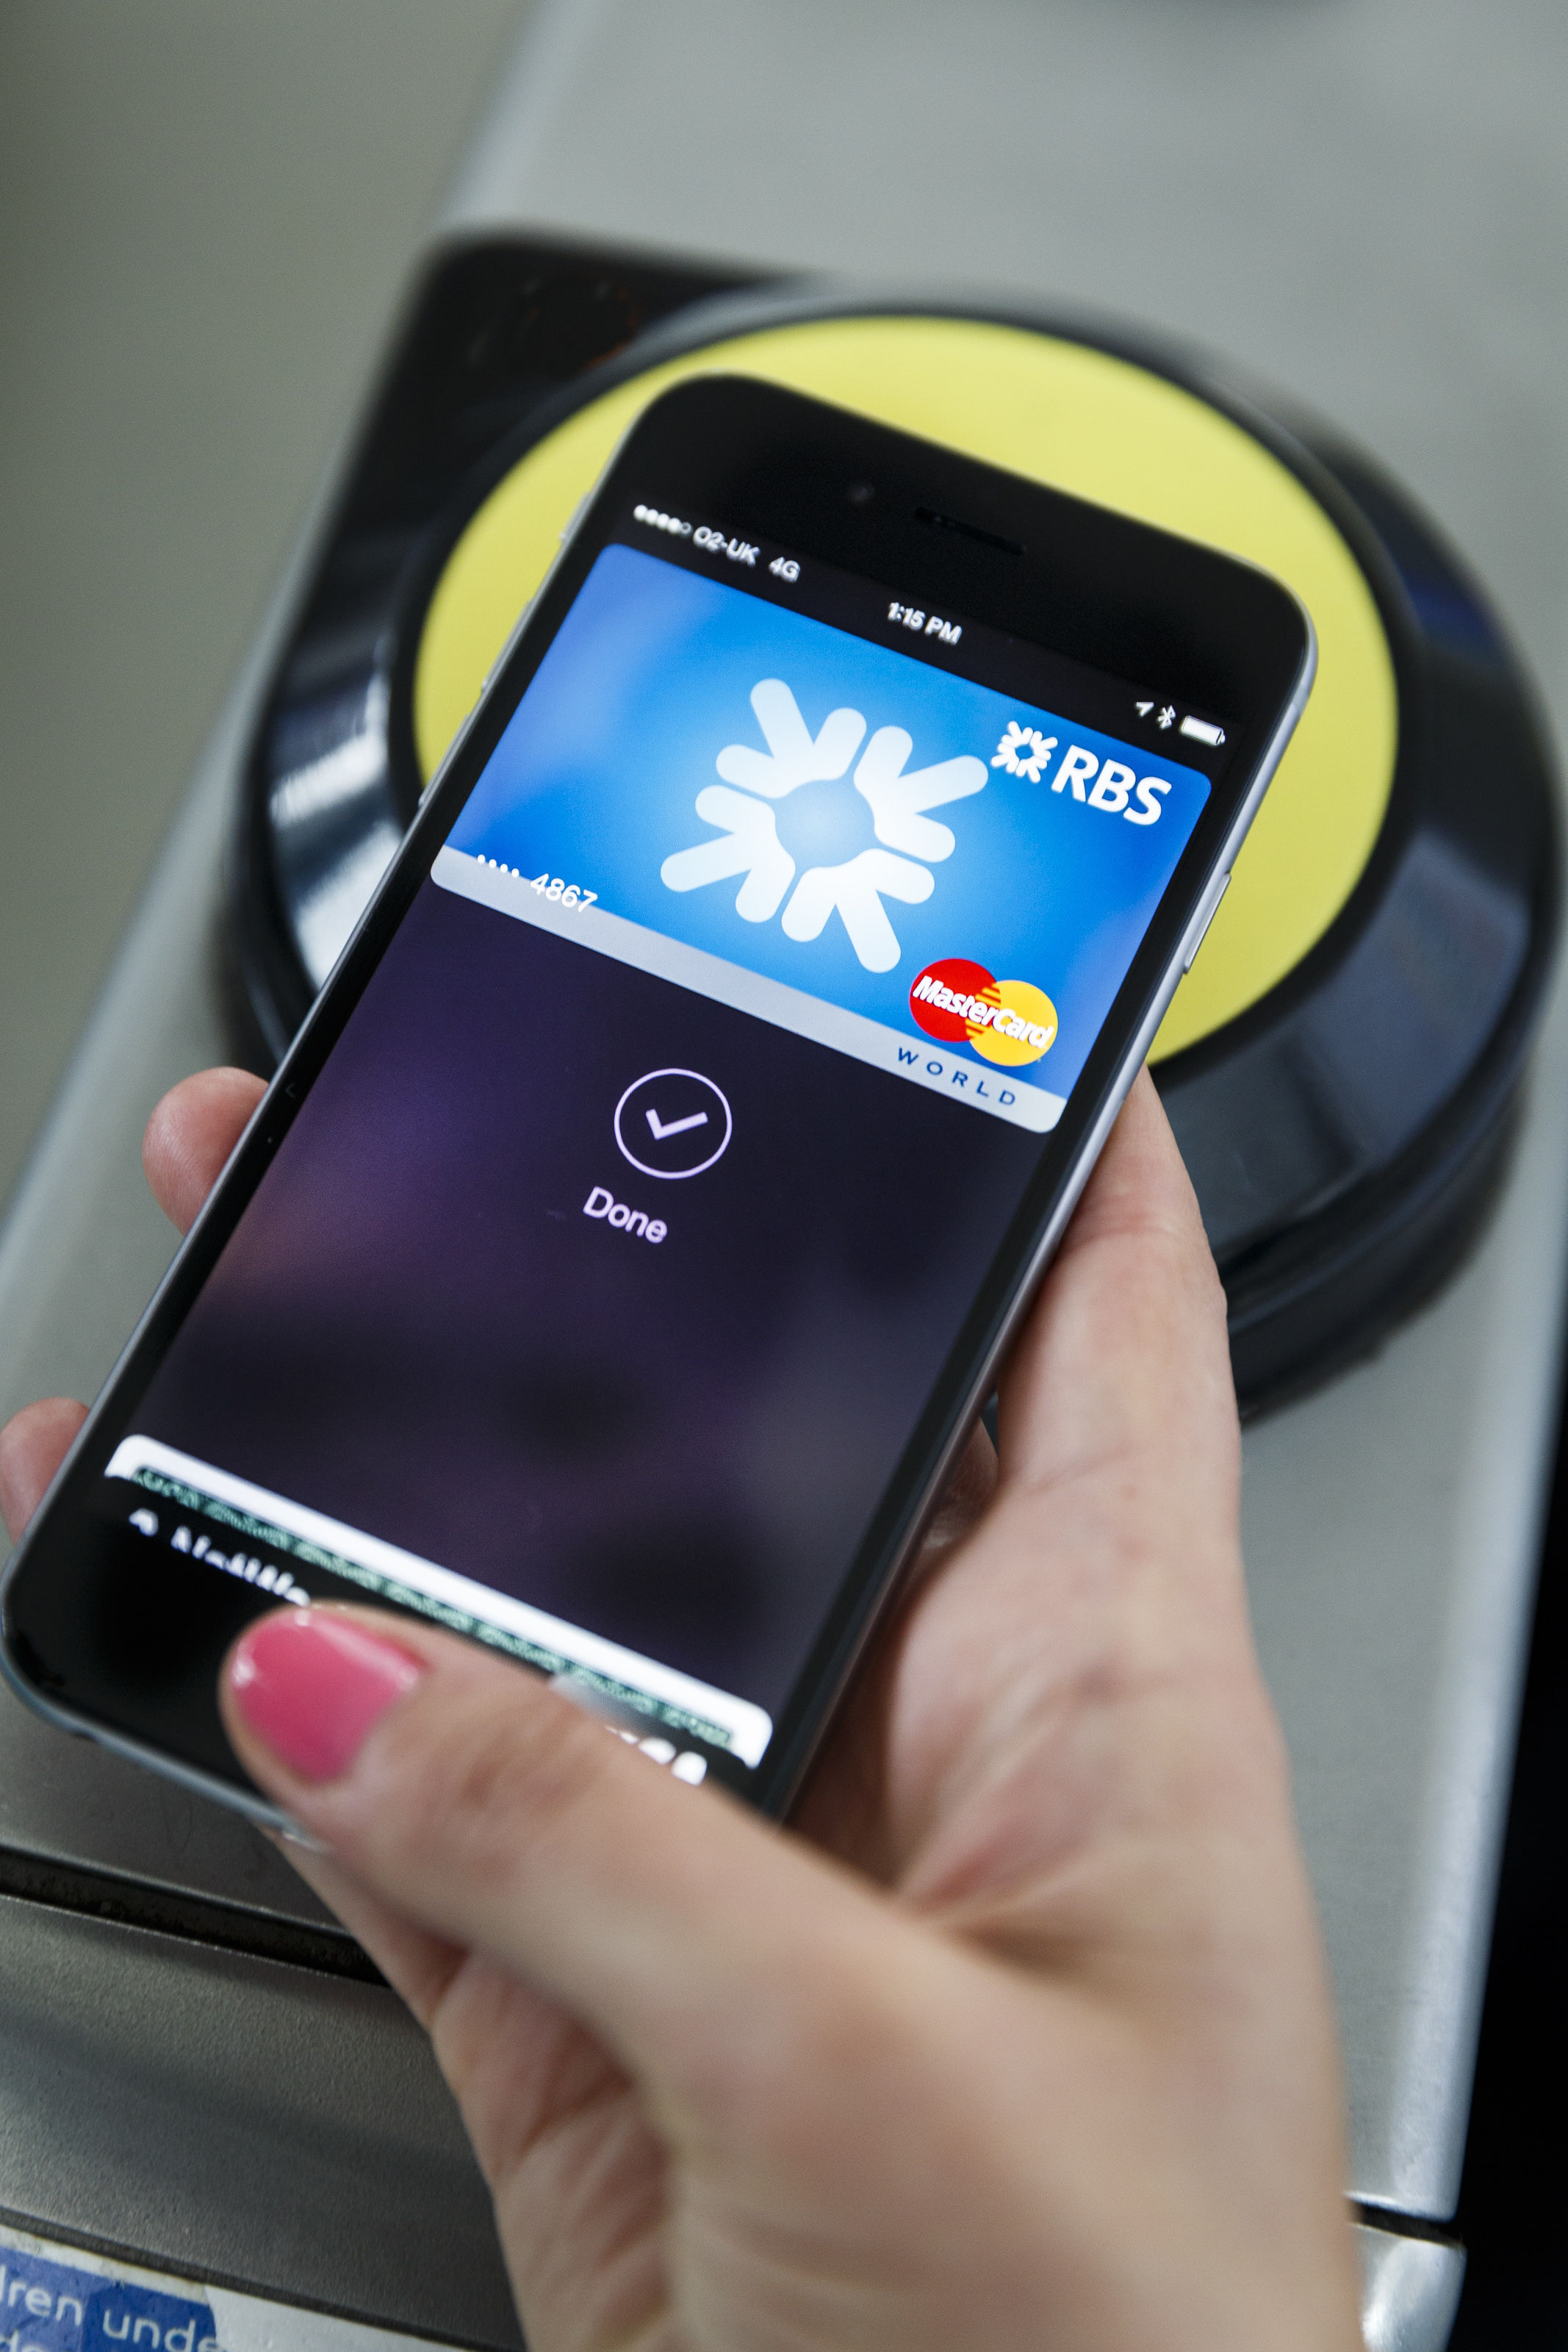 There is no spending limit with Apple Pay - so you can splash out and then simply tap your phone to pay for it all